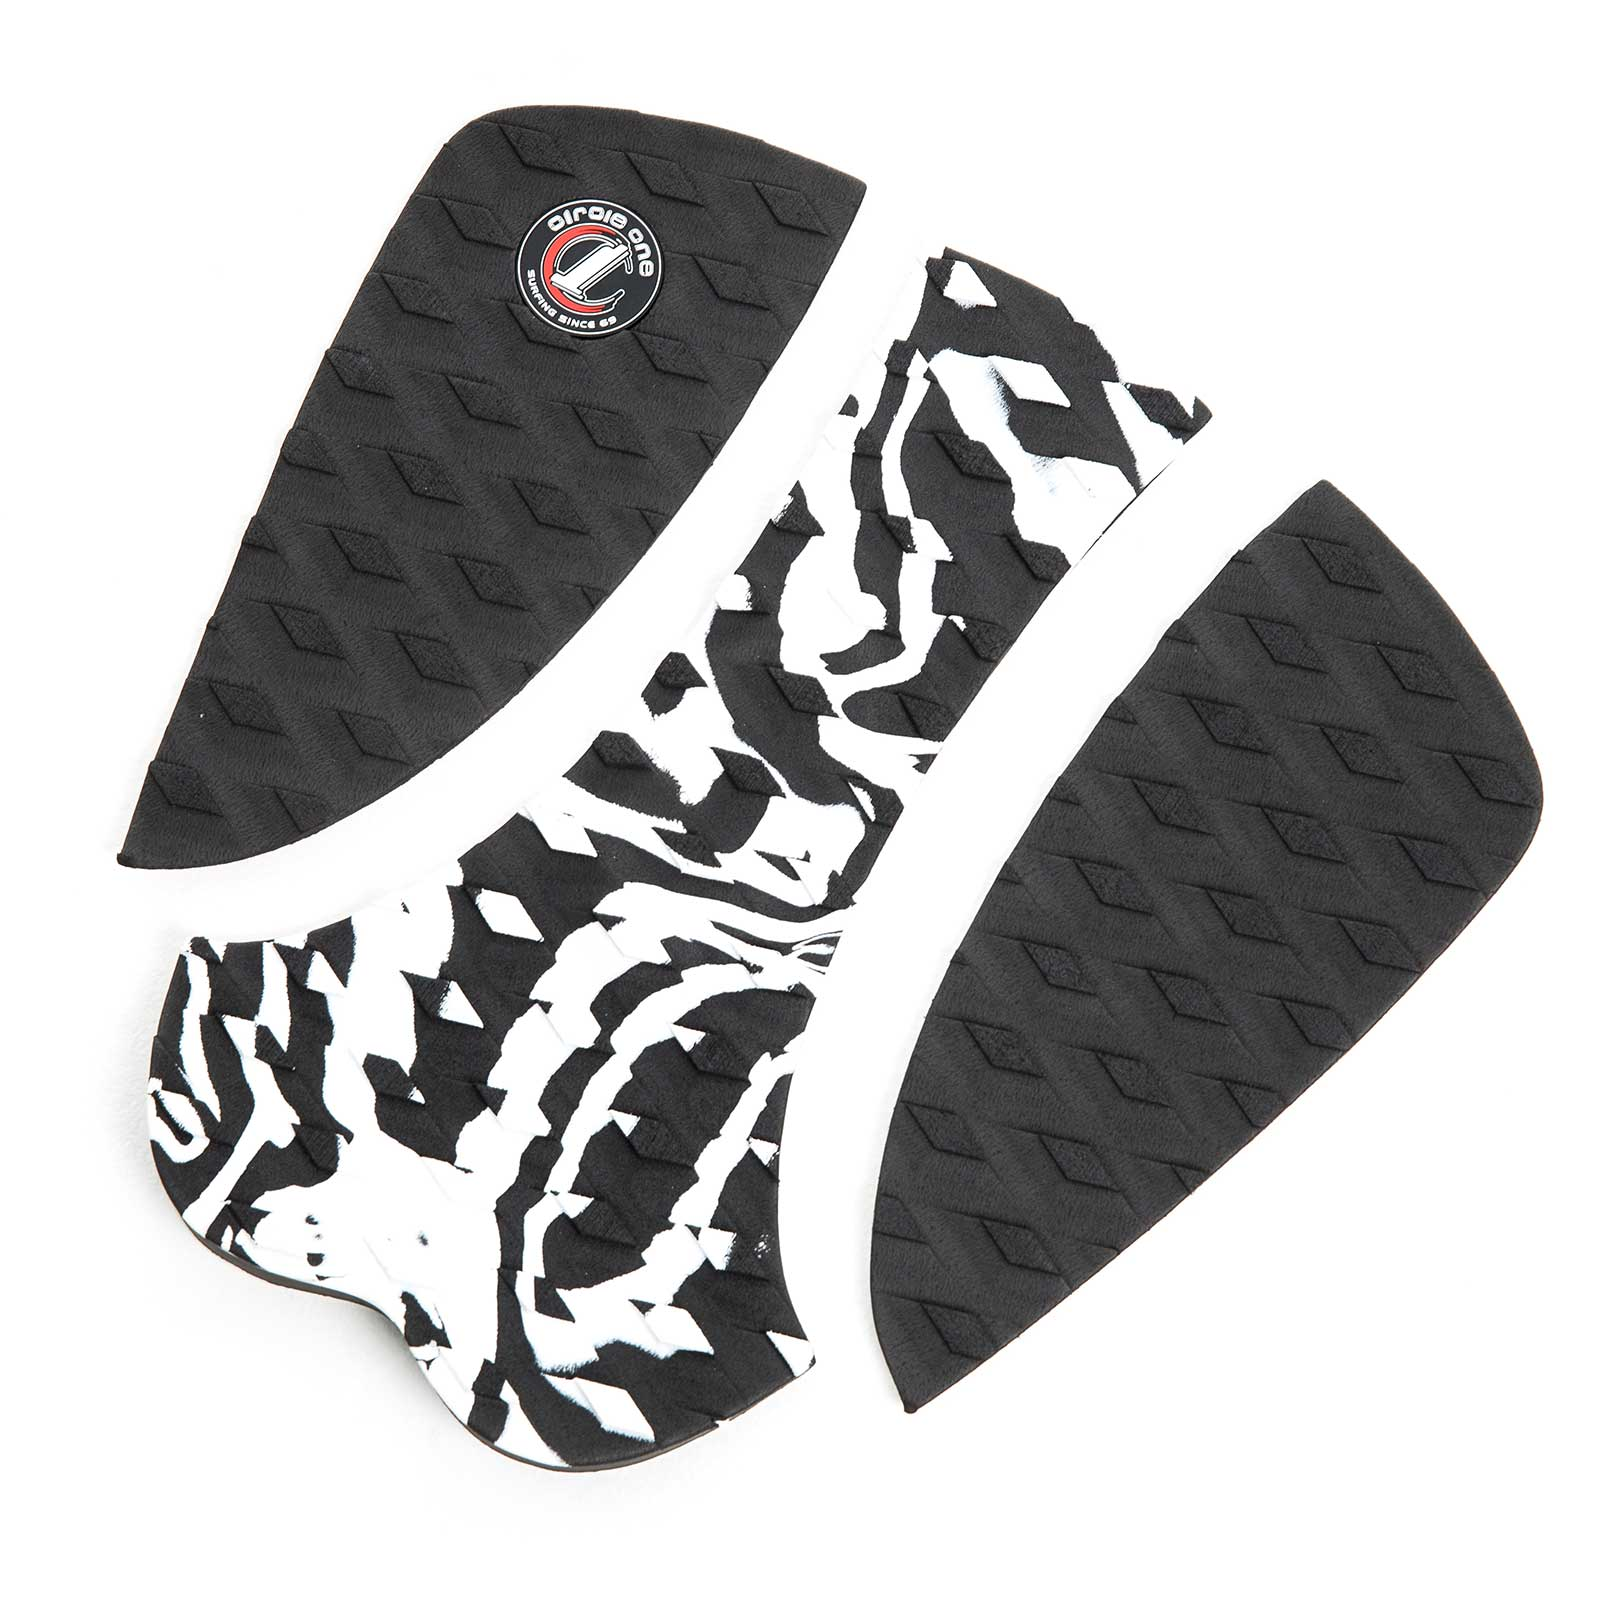 Surfboard Traction Pad Deck Grip - Circle One 96a5e5eab787